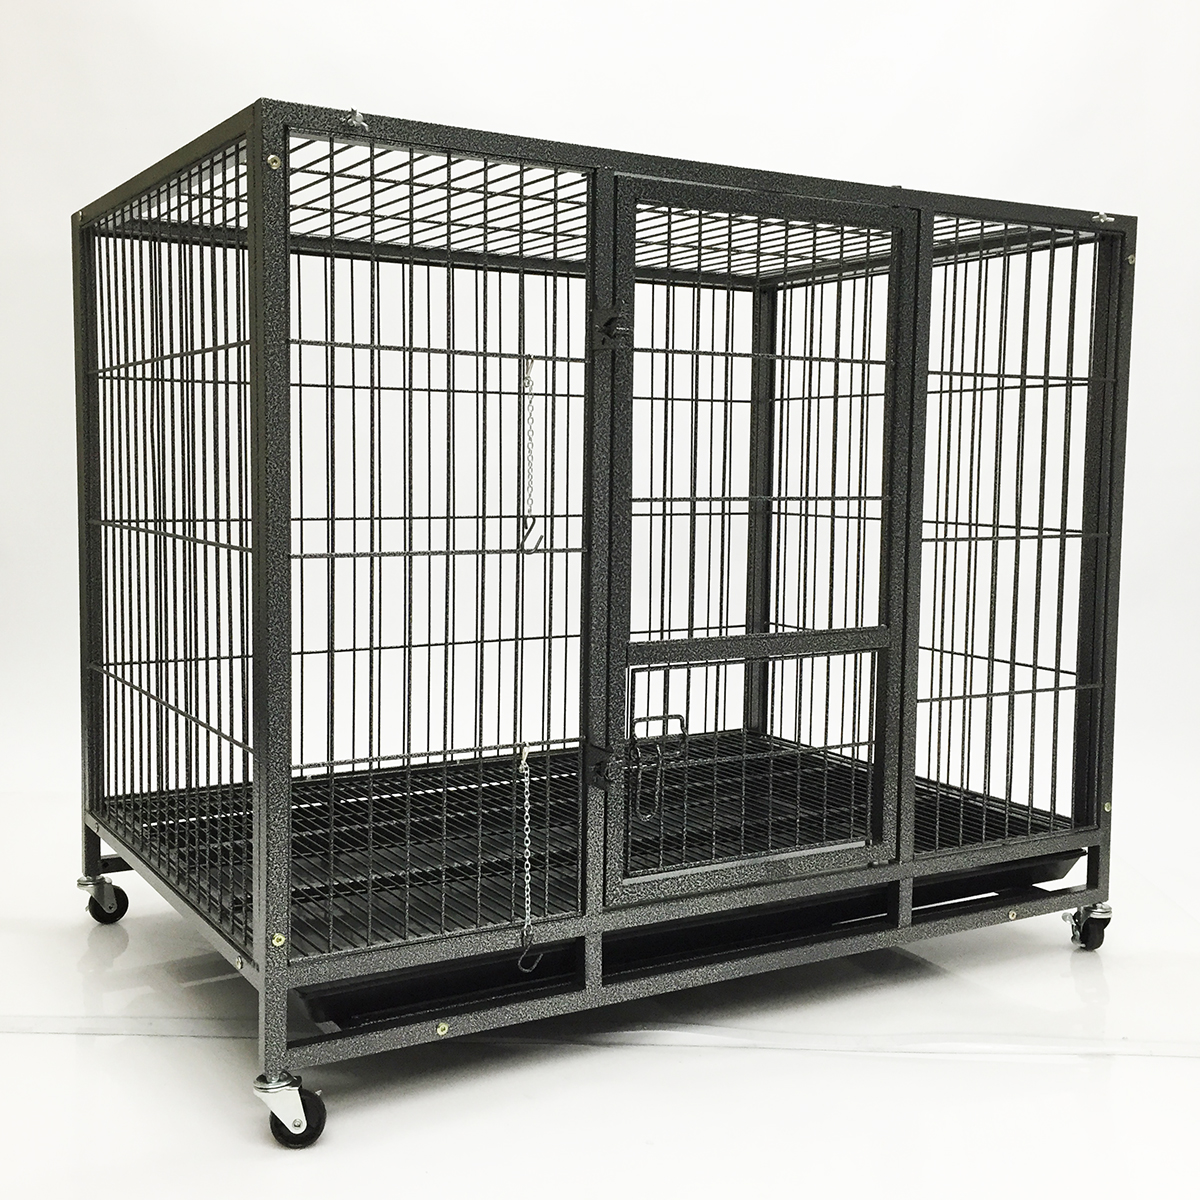 Portable Dog Kennels : Quot dog kennel wheels portable pet puppy carrier crate